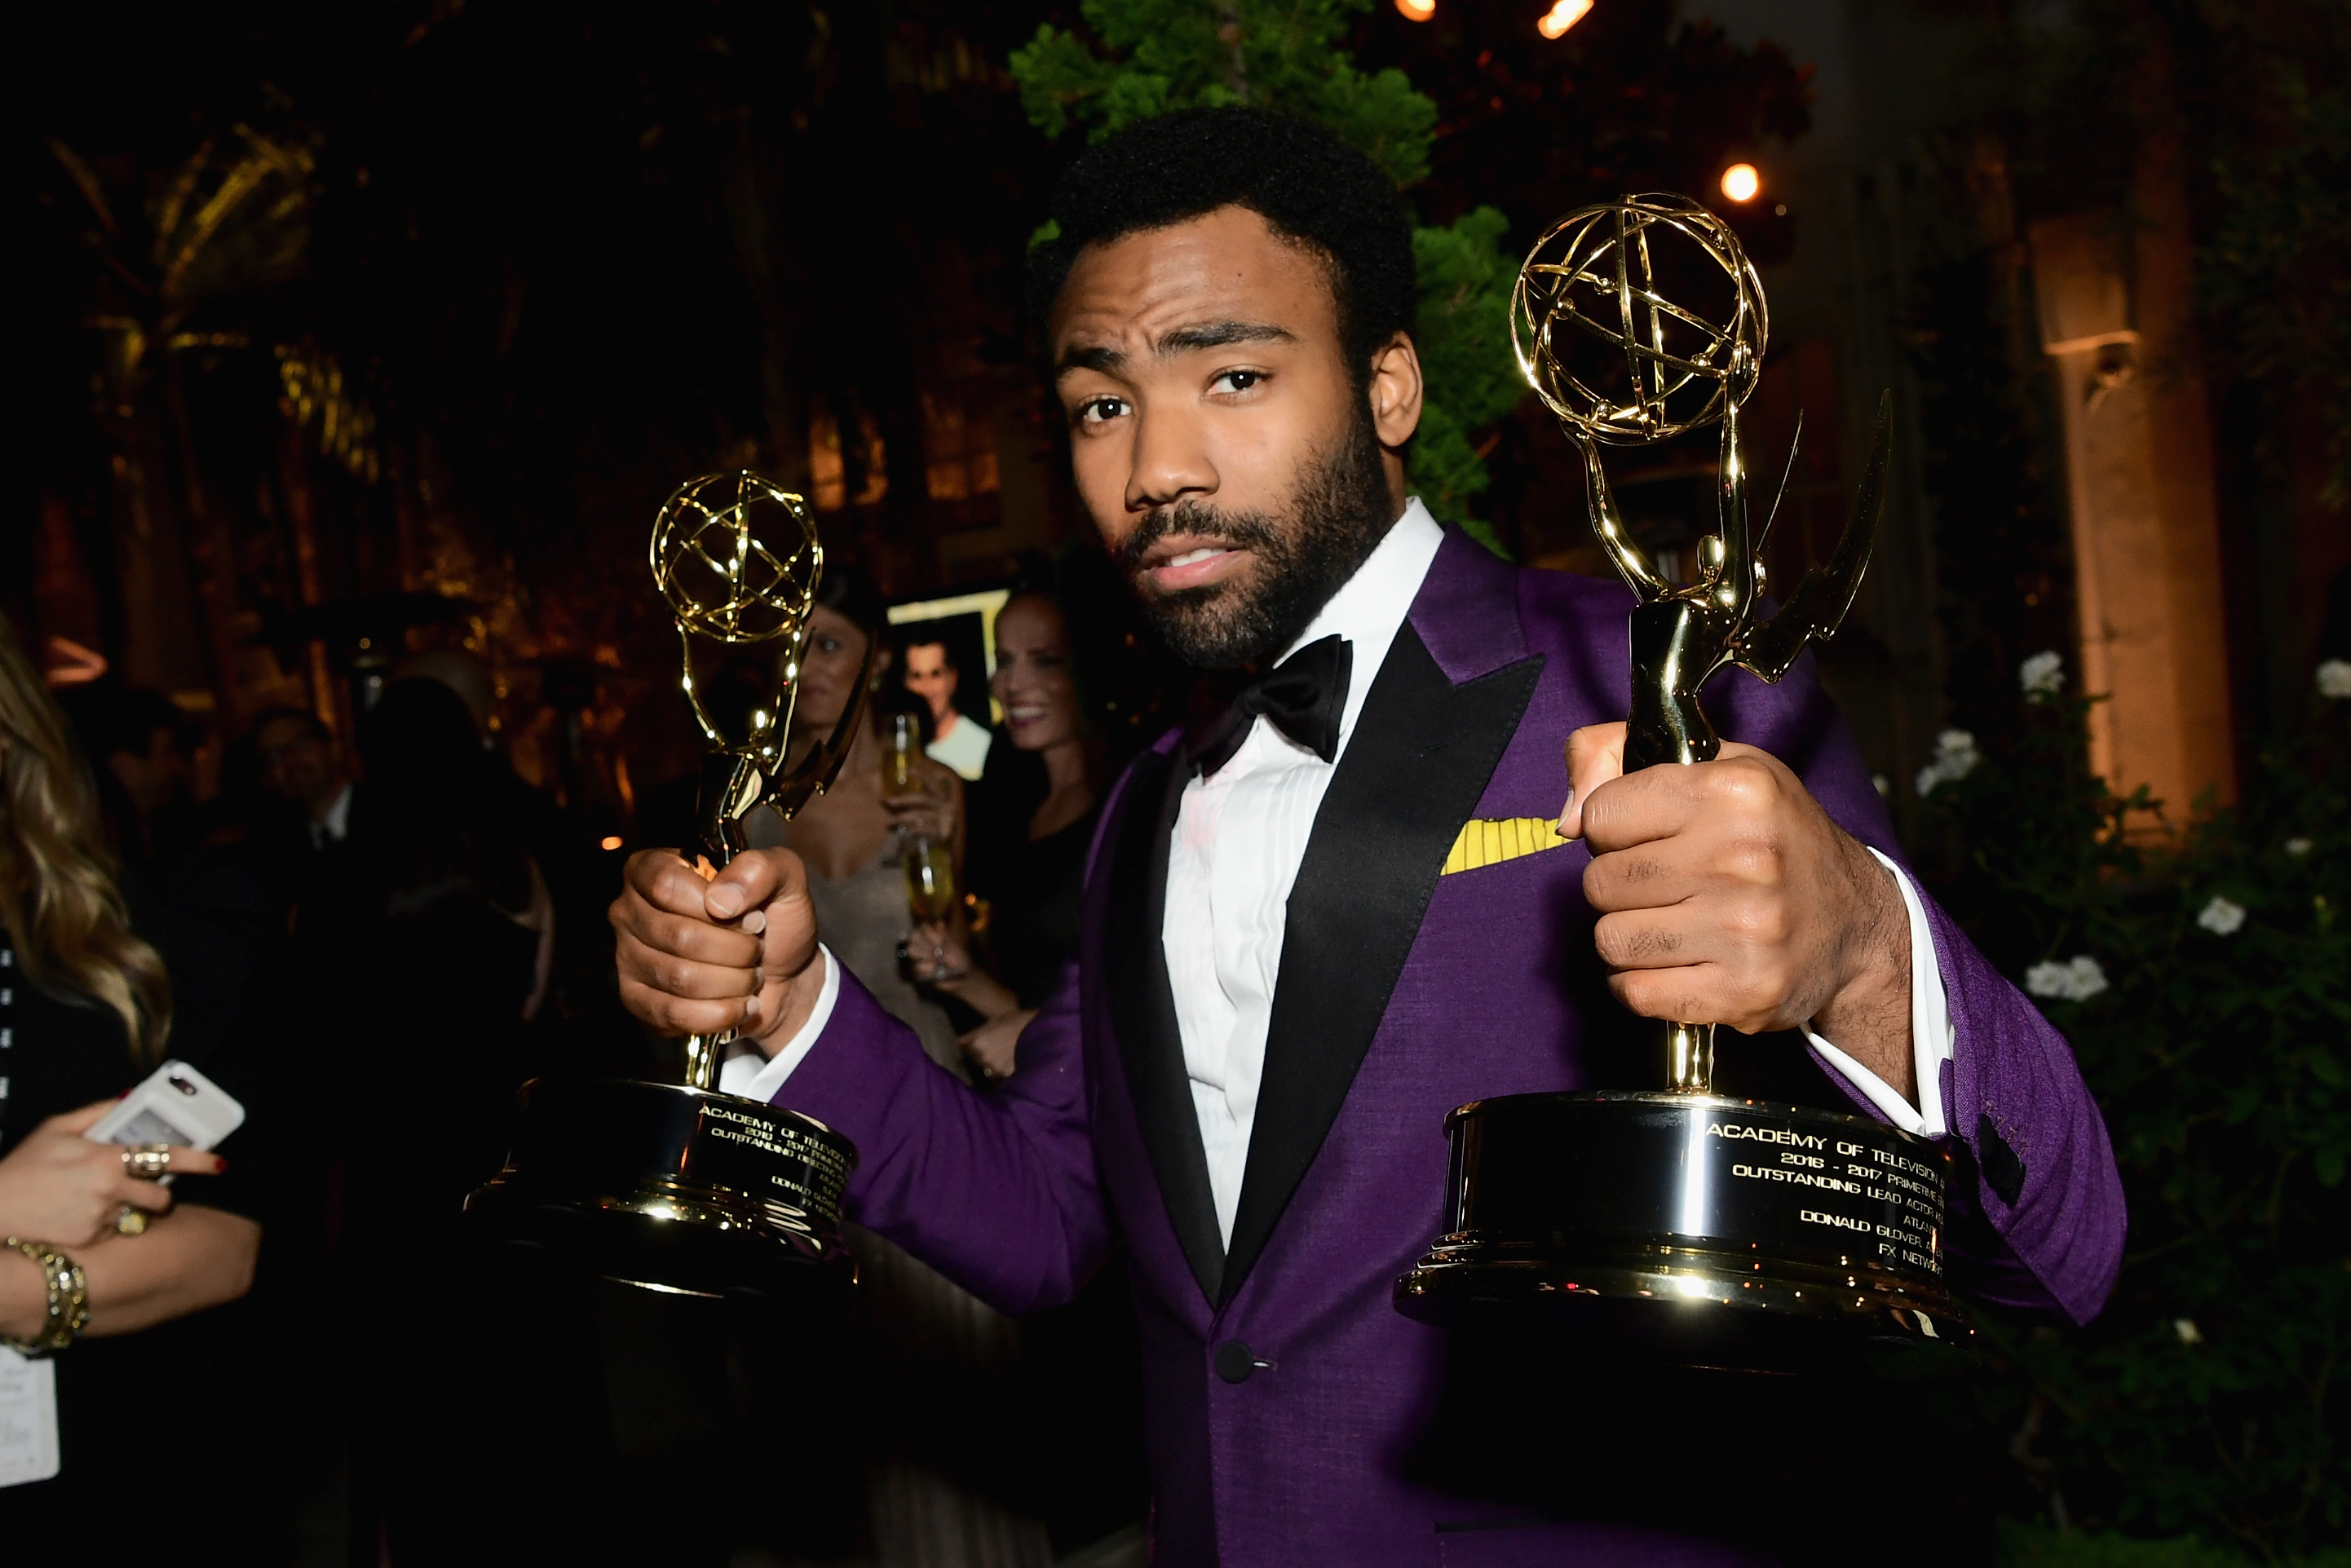 Donald Glover attends FOX Broadcasting Company, Twentieth Century Fox Television, FX And National Geographic 69th Primetime Emmy Awards After Party at Vibiana on September 17, 2017 in Los Angeles, California. (Photo by Emma McIntyre/Getty Images)